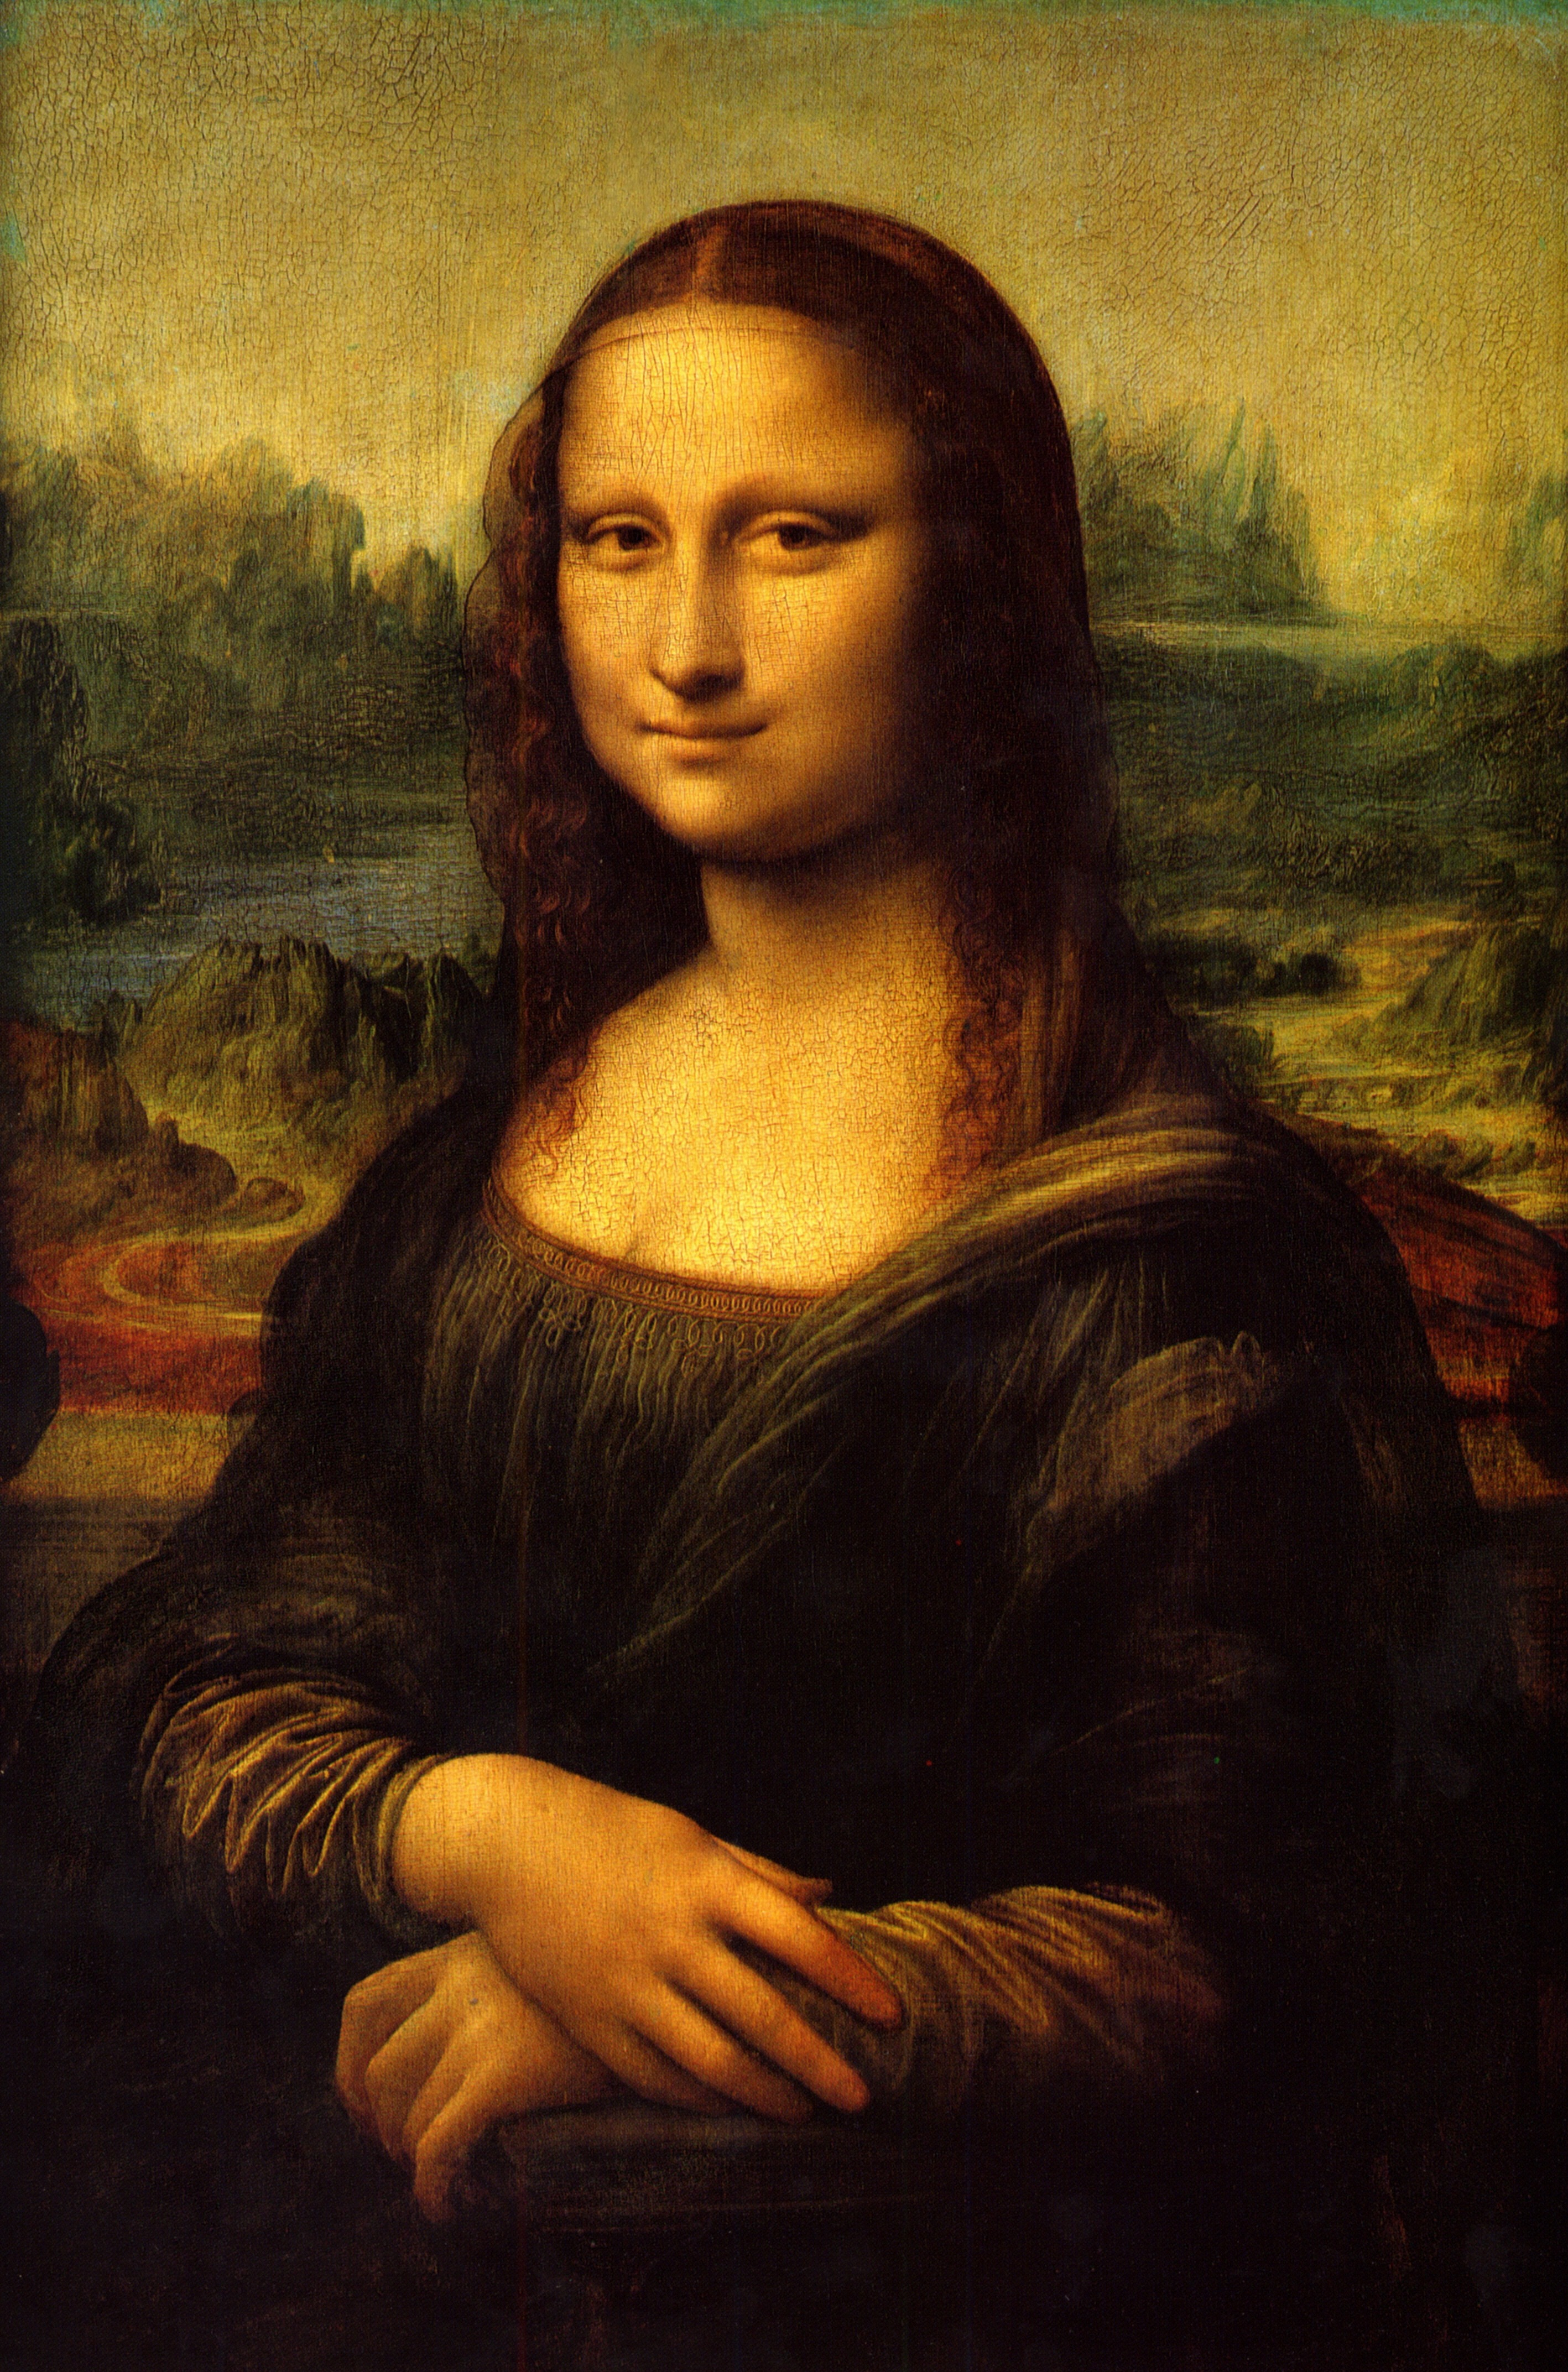 http://upload.wikimedia.org/wikipedia/commons/6/6a/Mona_Lisa.jpg